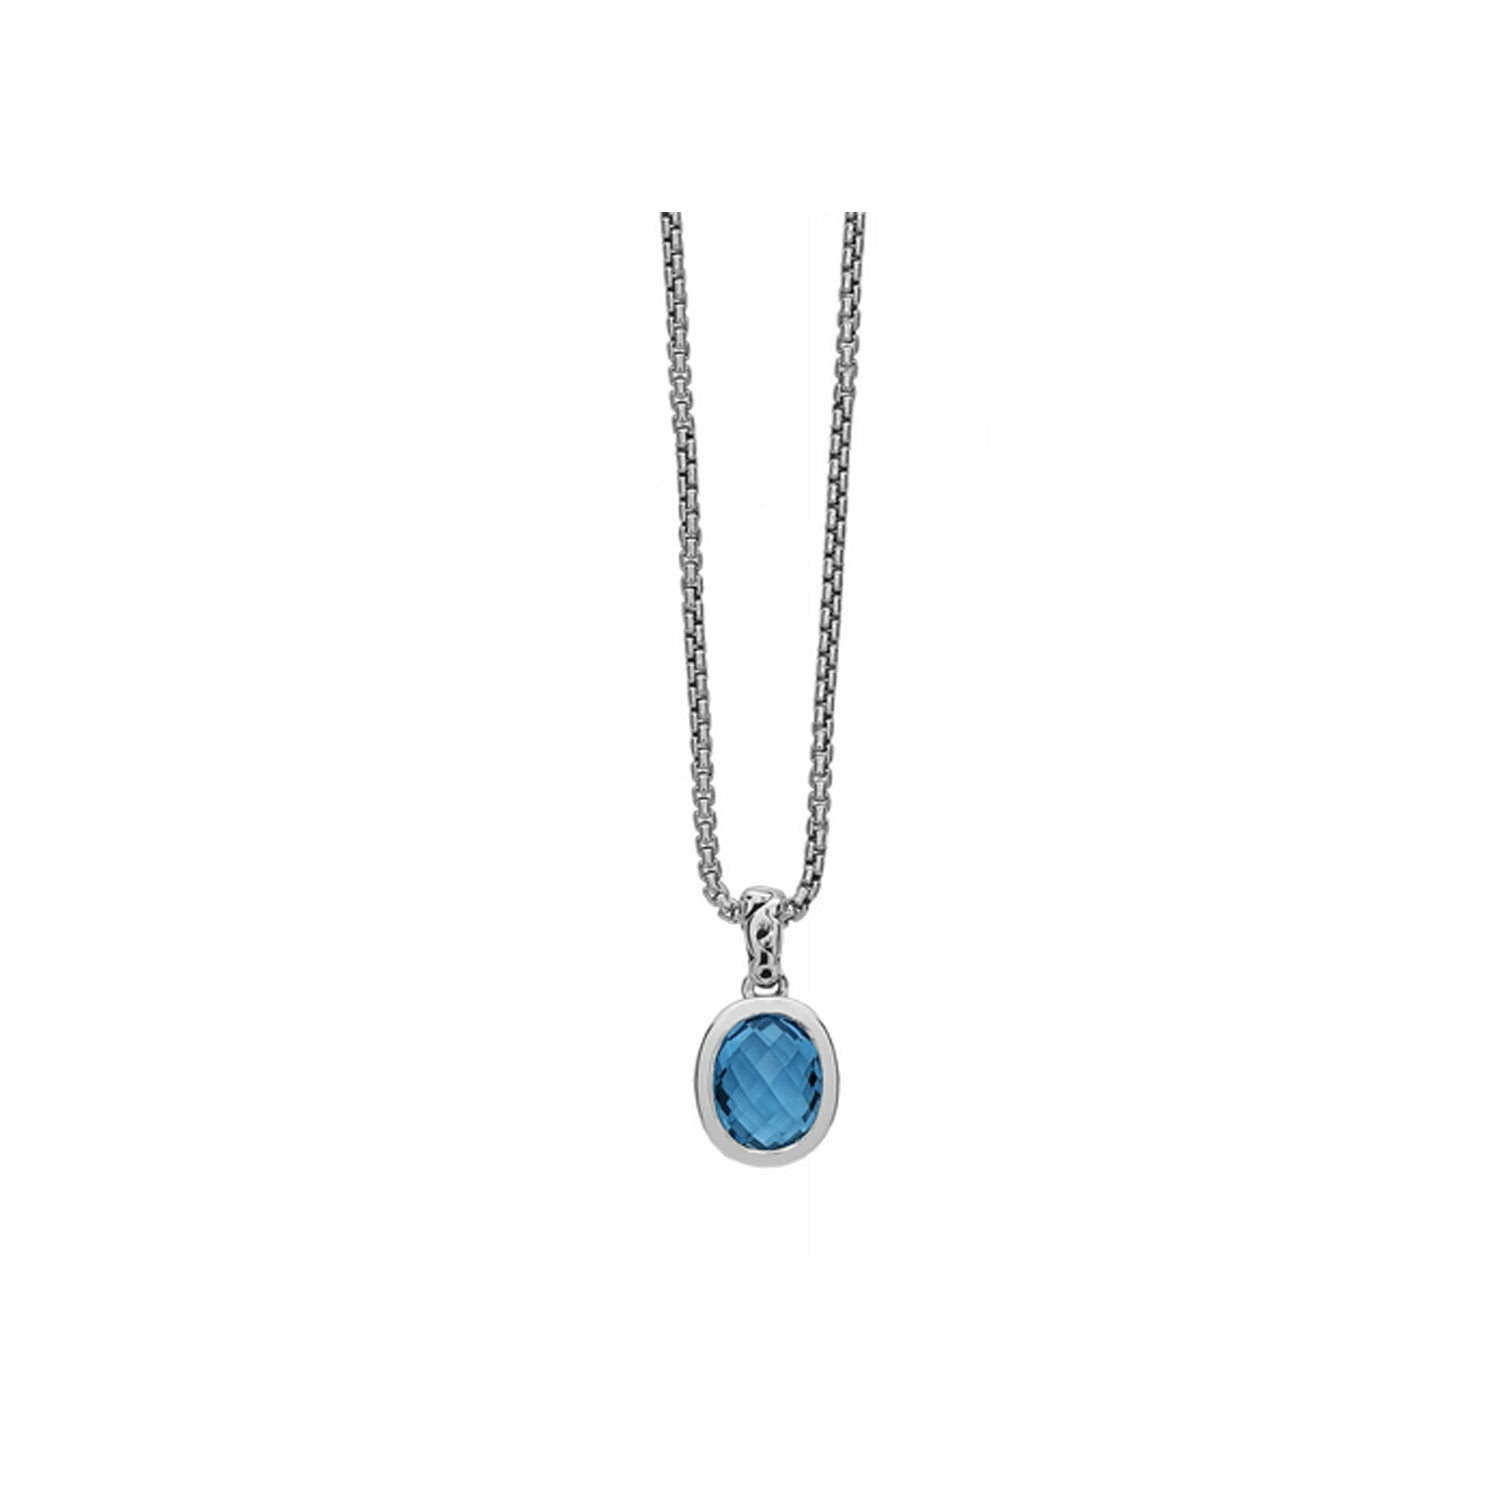 Charles Krypell Oval Blue Topaz Pendant Necklace